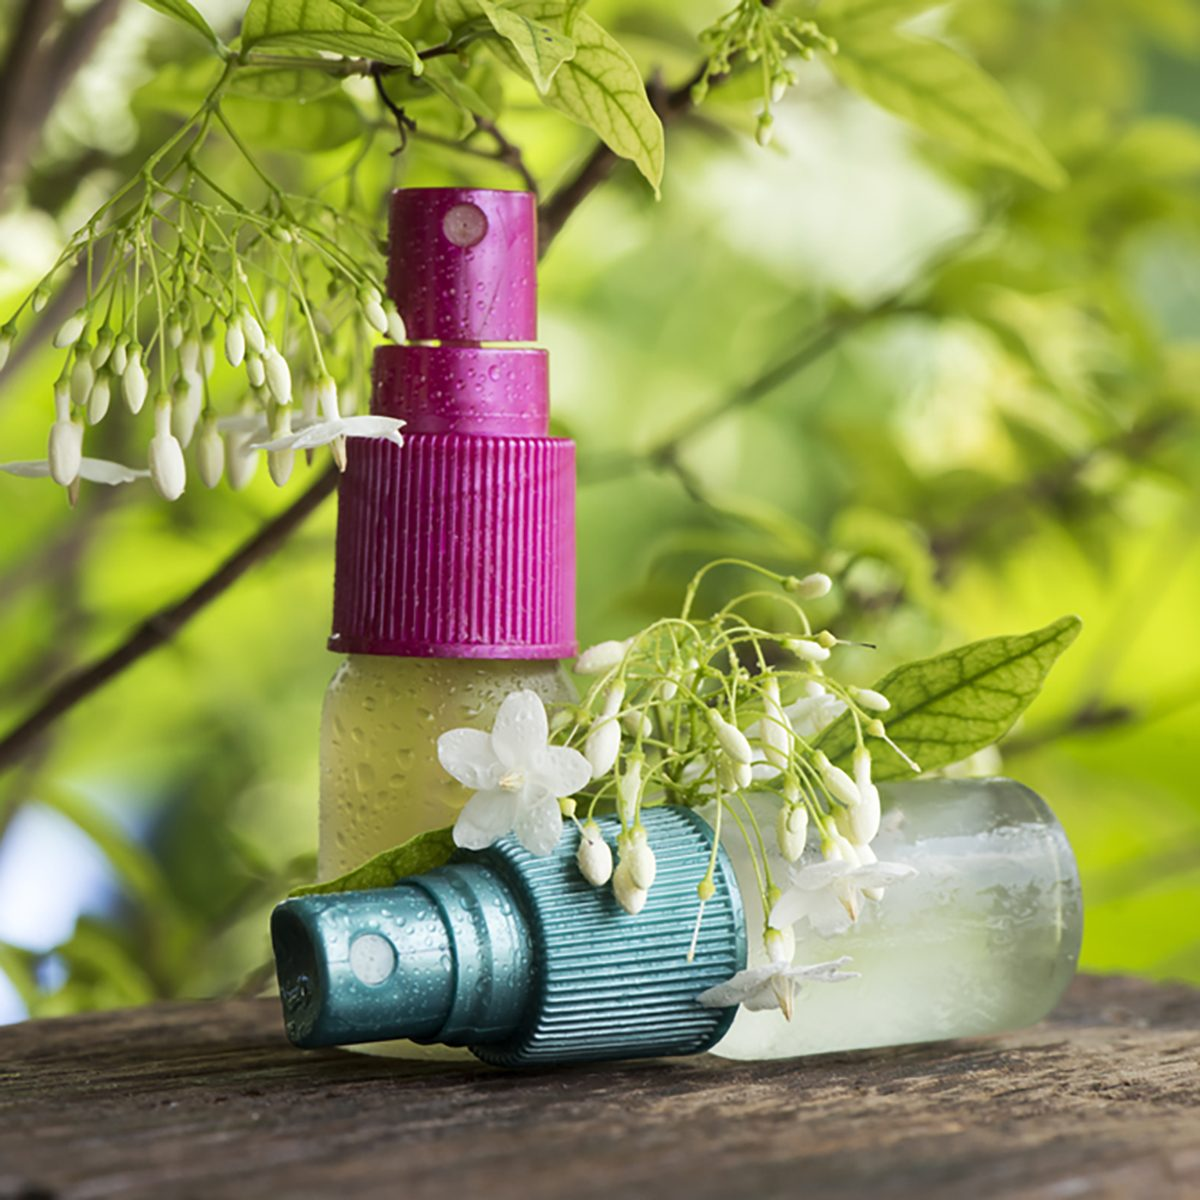 Moke flowers extract, essential oil is mixed with water in a spray bottle